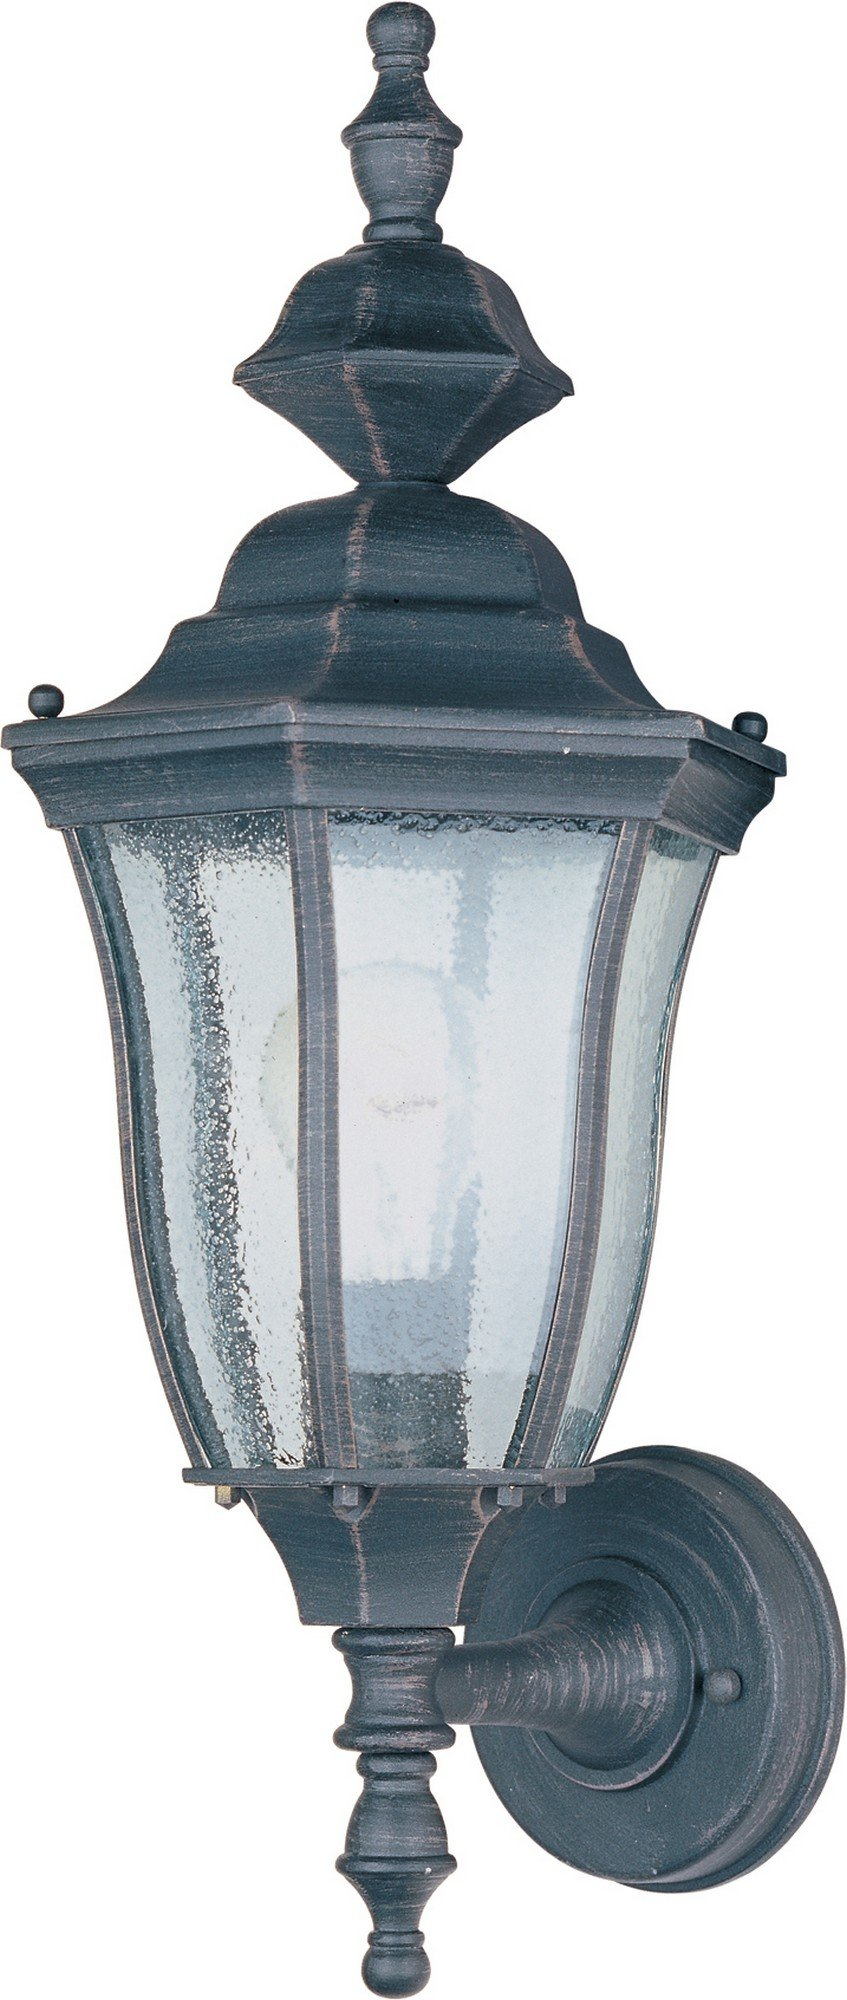 Maxim 1012RP Madrona Cast 1-Light Outdoor Wall Lantern, Rust Patina Finish, Seedy Glass, MB Incandescent Incandescent Bulb , 100W Max., Dry Safety Rating, Standard Dimmable, Glass Shade Material, 10350 Rated Lumens